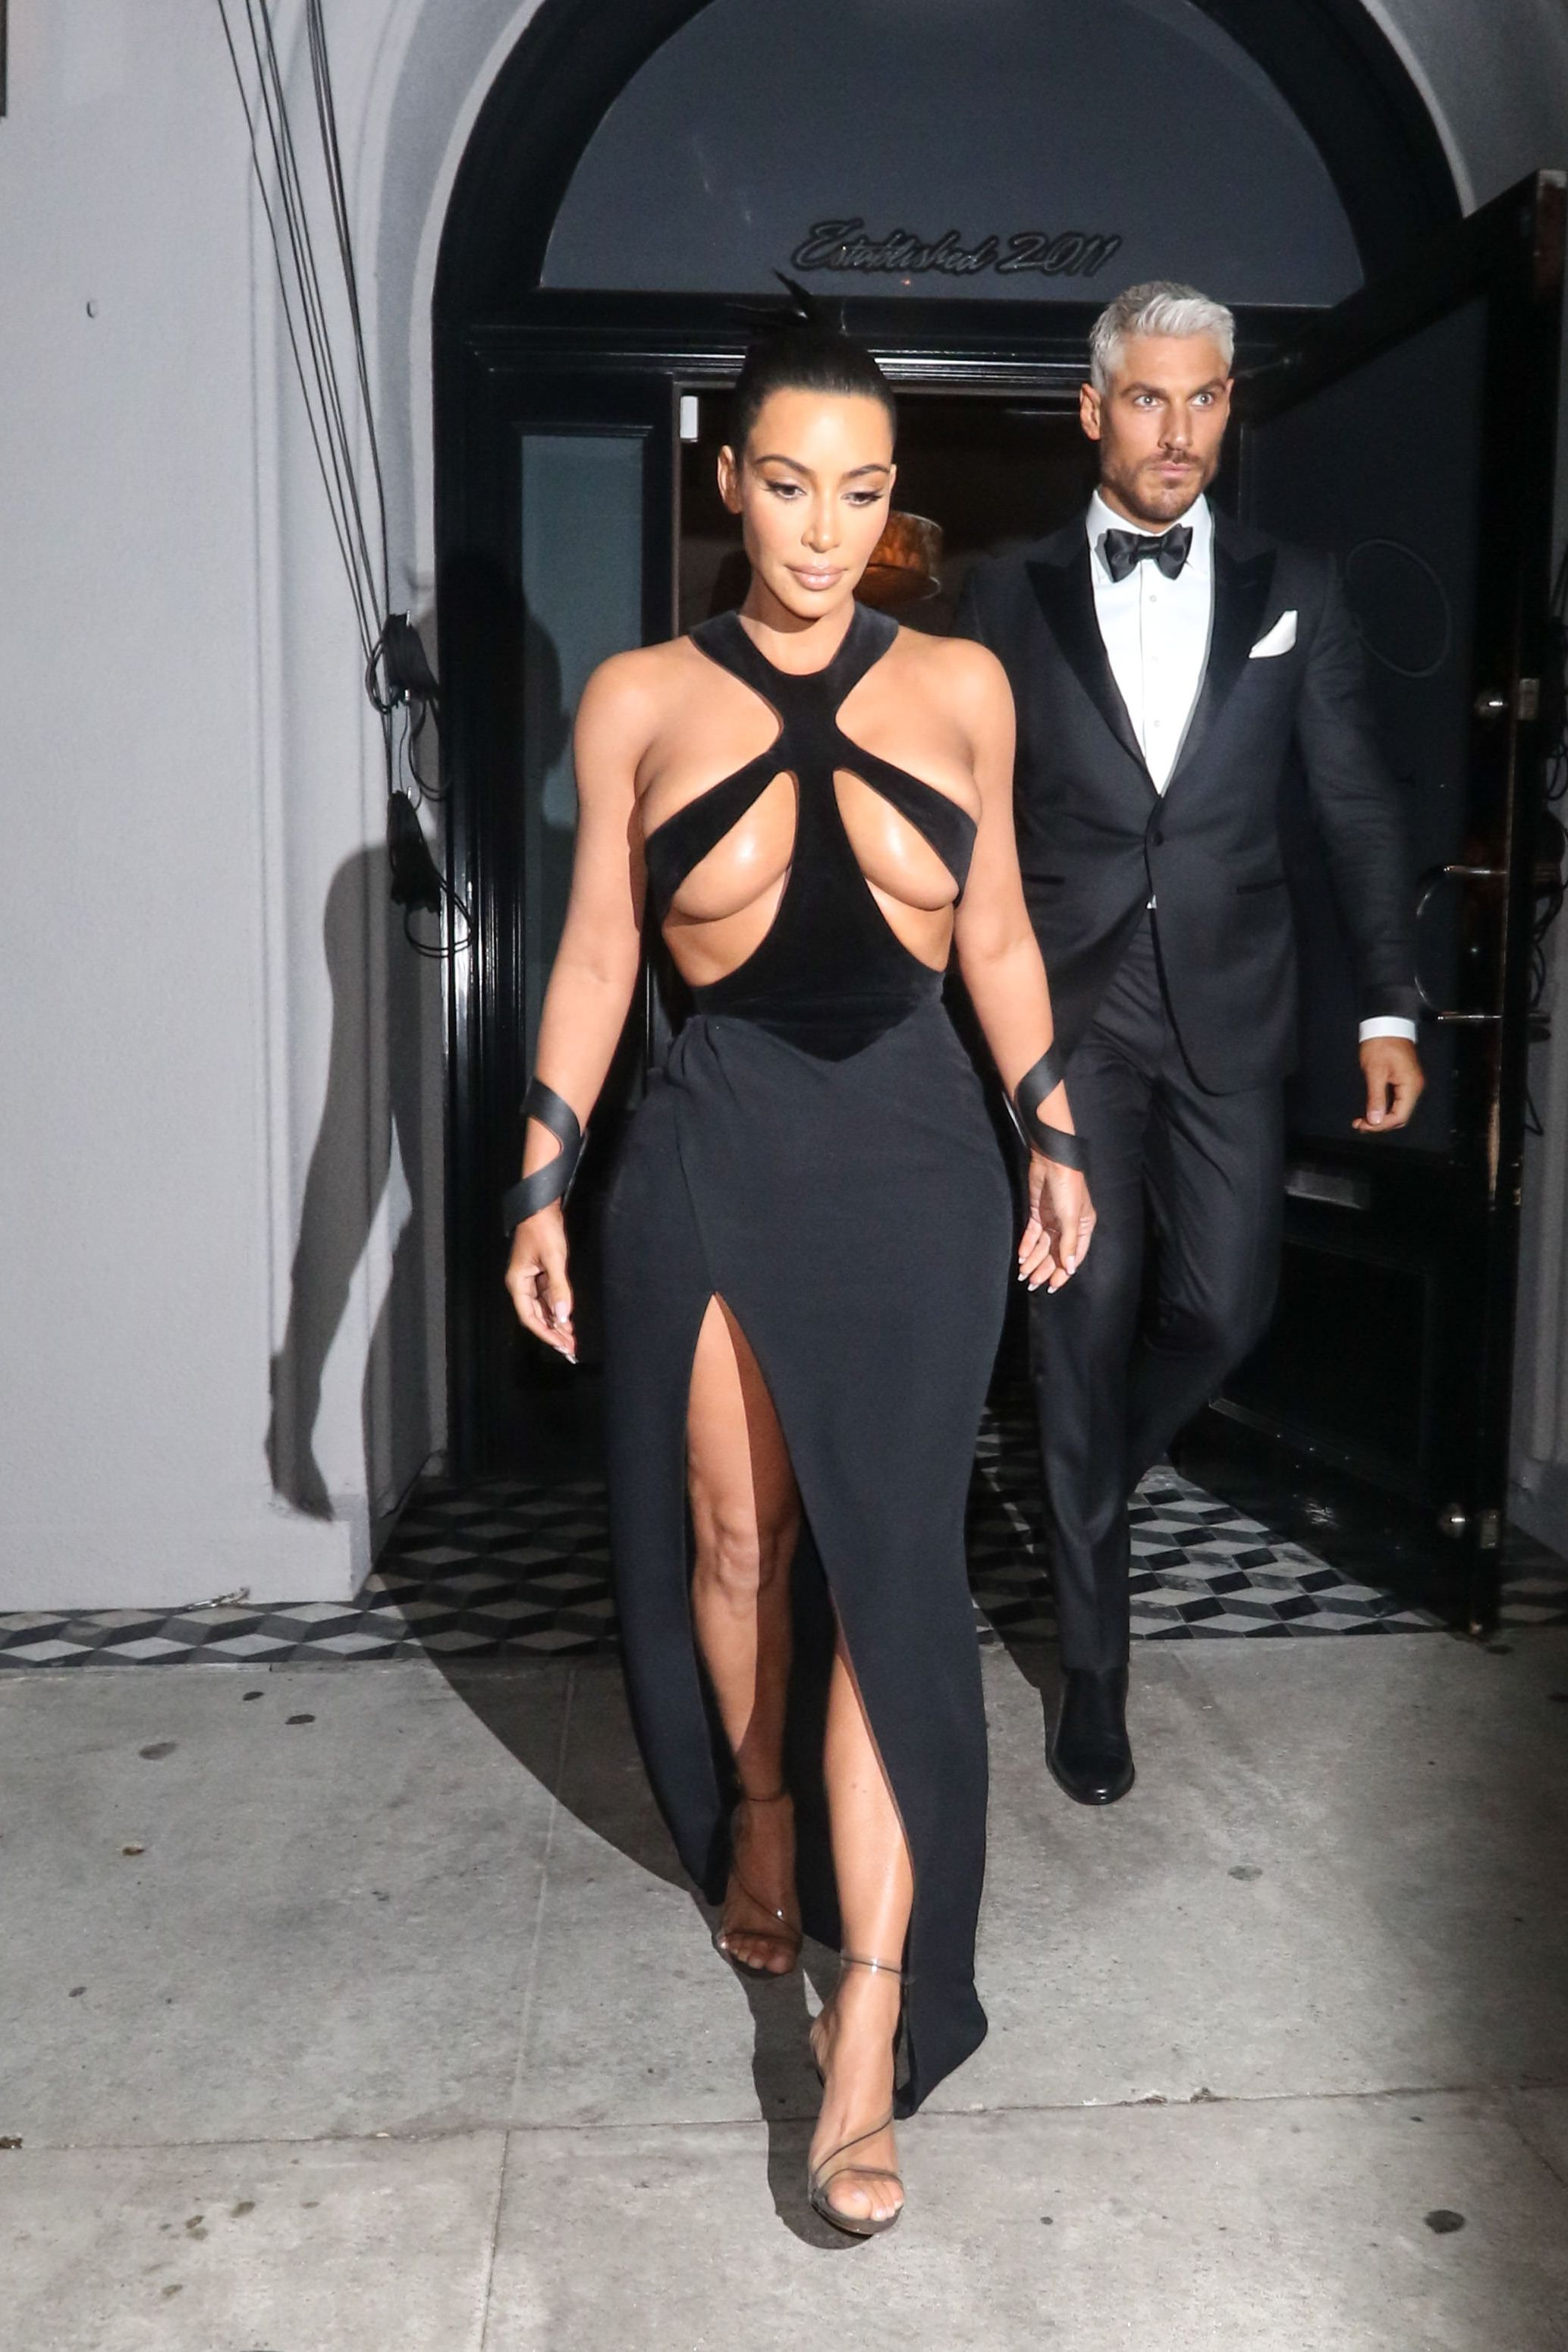 Kim Kardashian If the reality star was going for a bondage look, she mastered it. Kim wore this cutout Thierry Mugler haute couture dress from the spring/summer 1998 collection while attending the fifth annual Hollywood Beauty Awards on February 17.